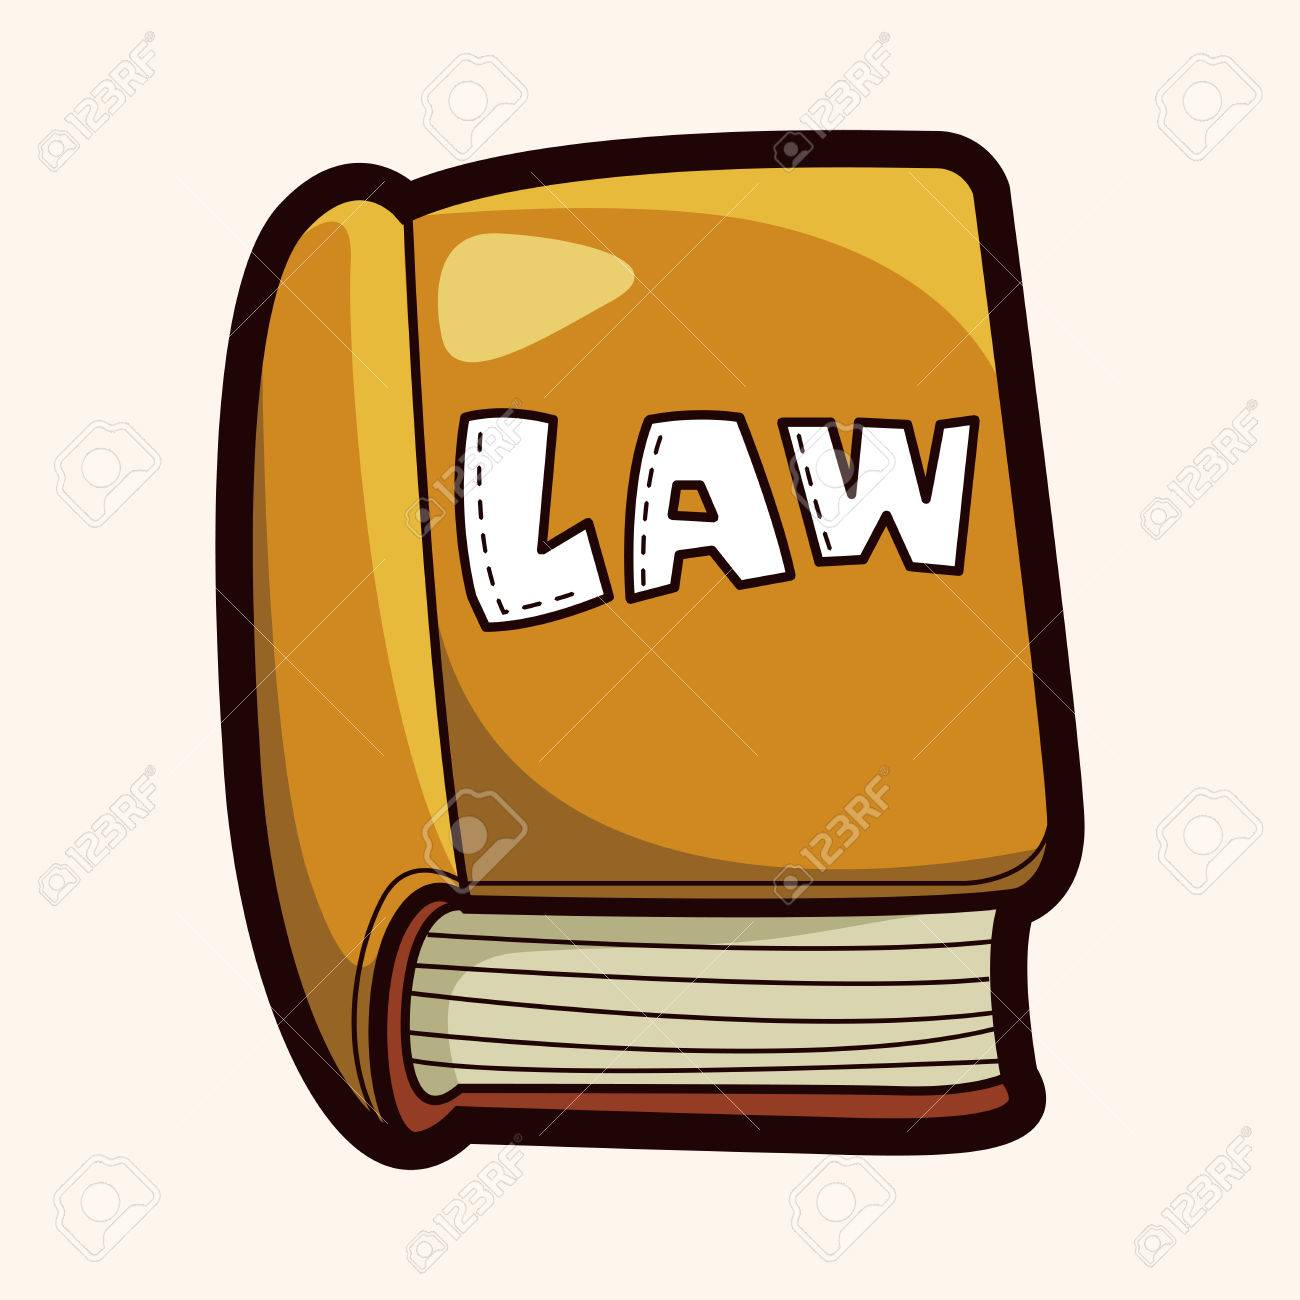 Laws clipart animated. Law book free download